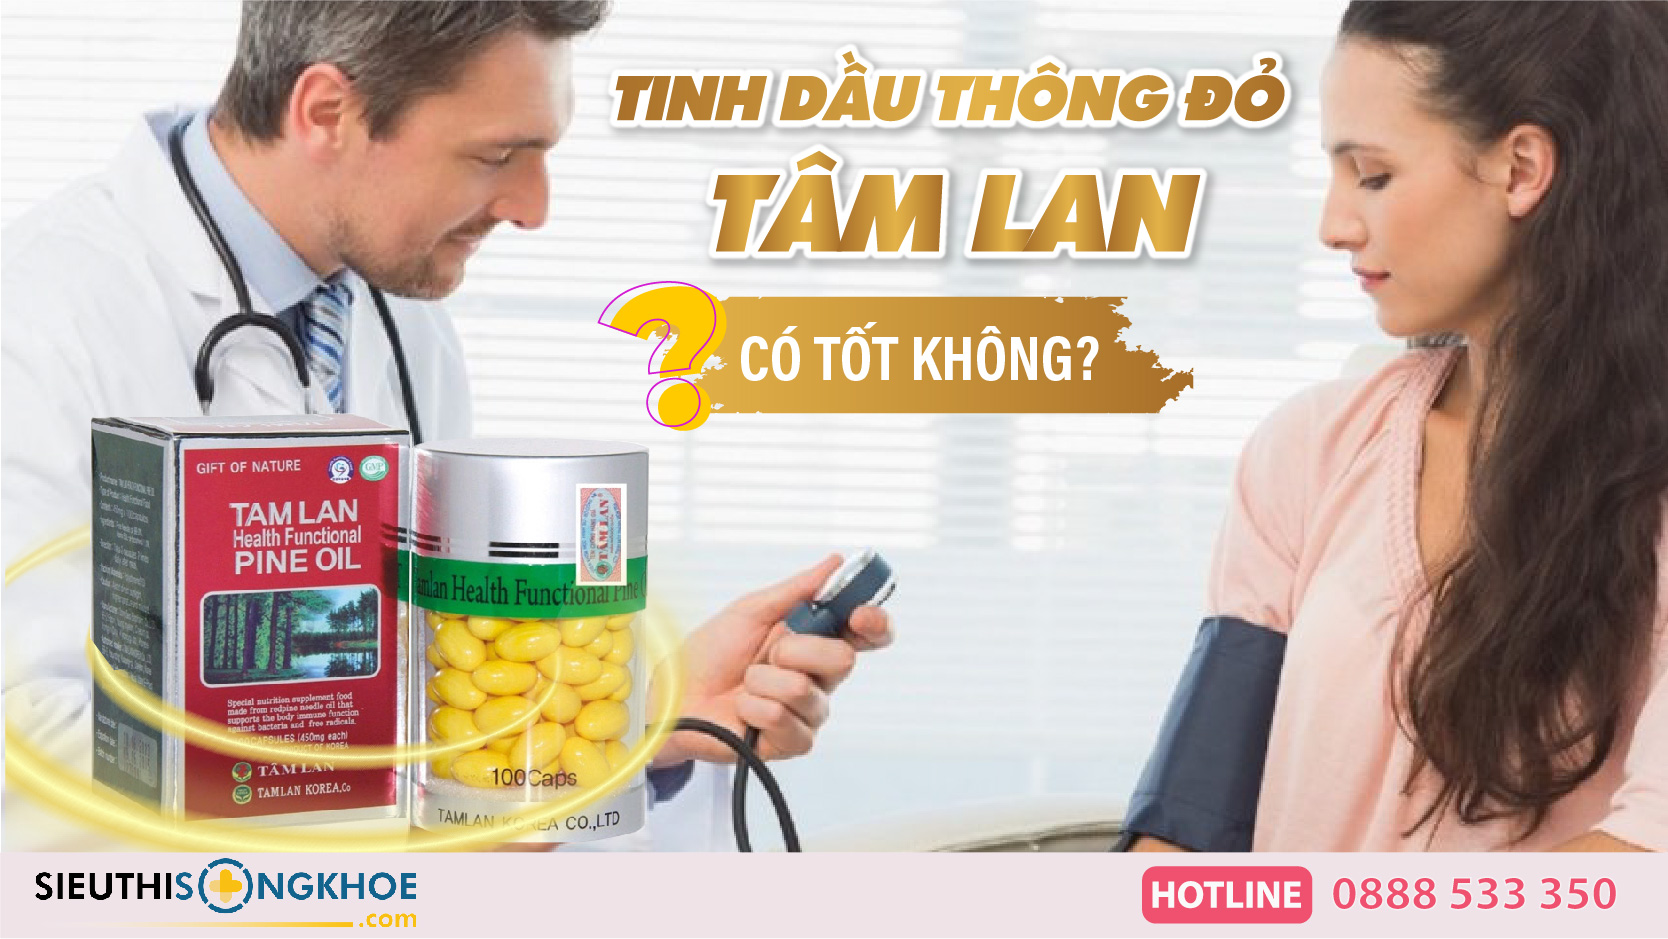 tinh dau thong do tam lan co tot khong